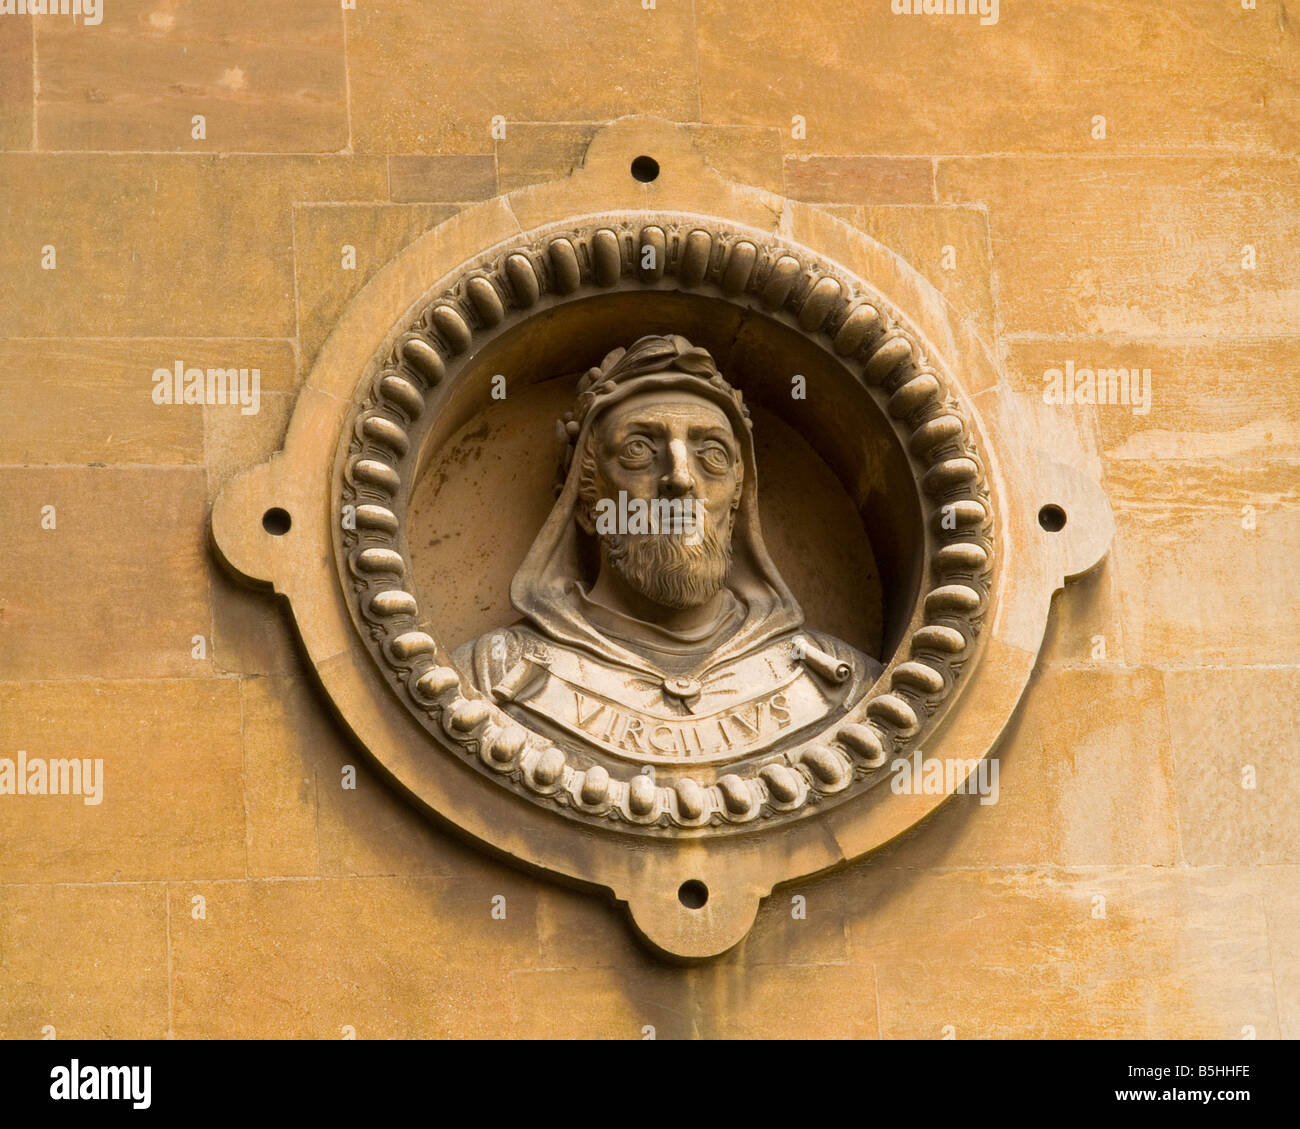 A stone statue carved into the exterior brick wall of Wollaton Hall in Nottingham, Nottinghamshire England UK - Stock Image